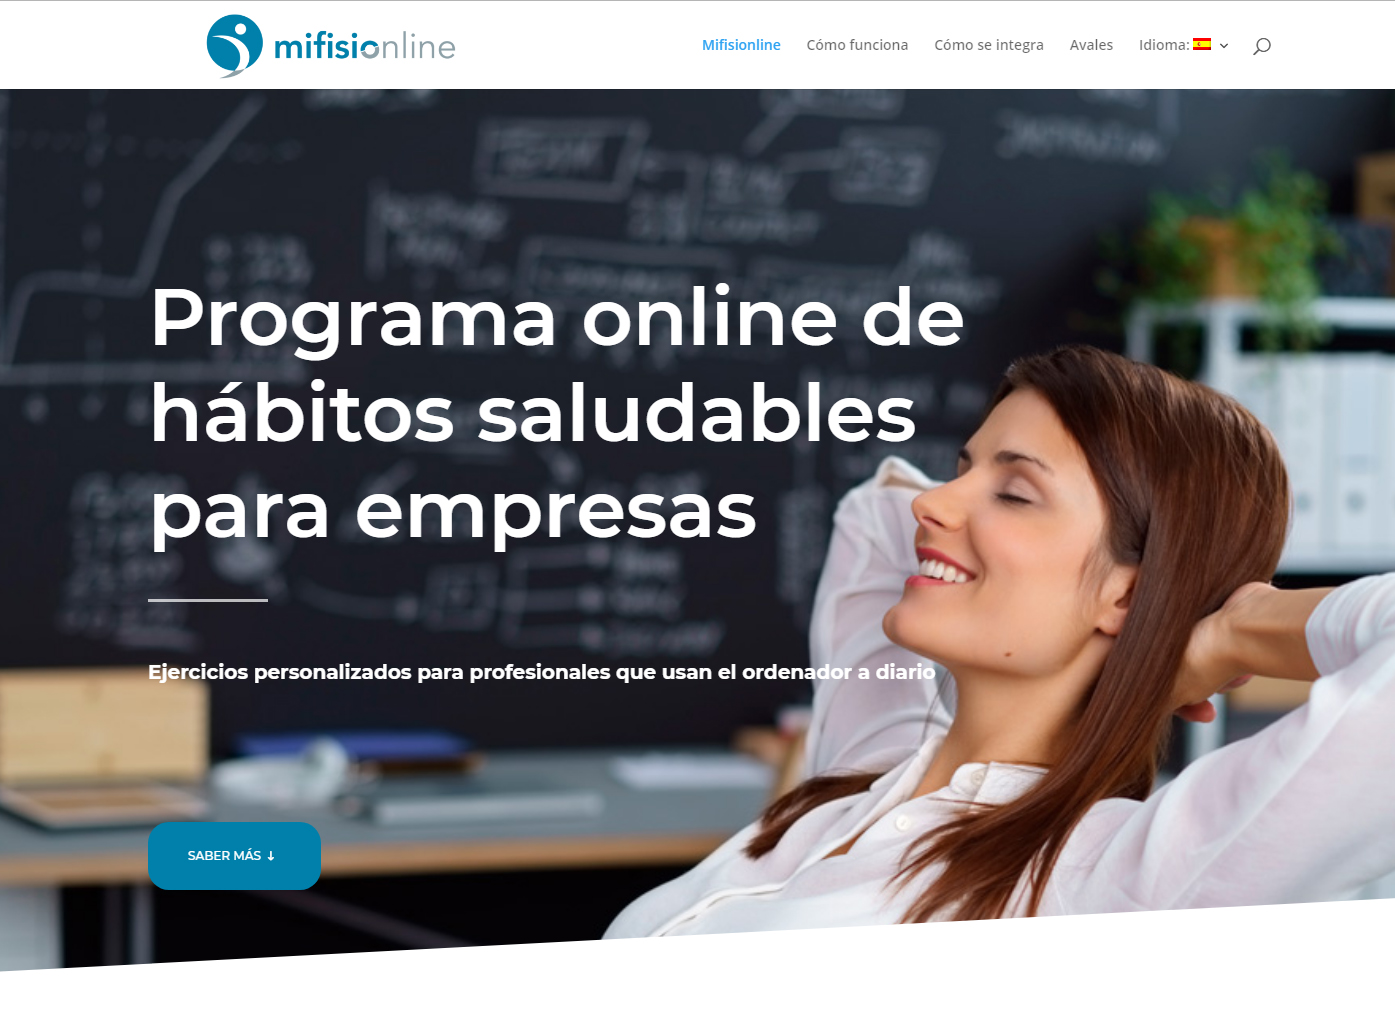 Mifisionline